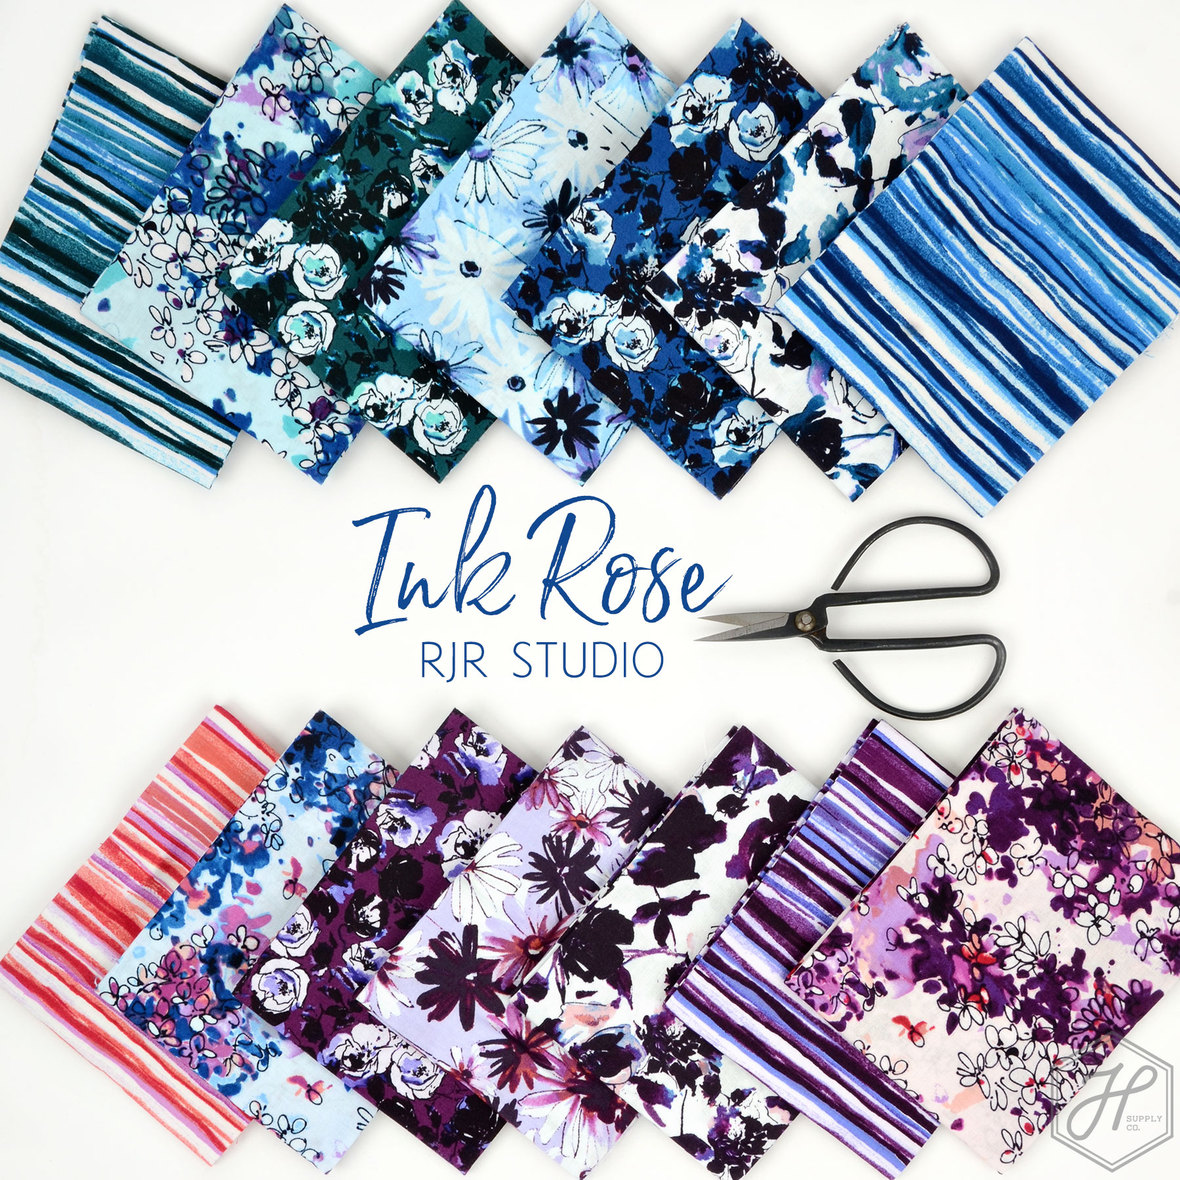 Ink-Rose-Fabric-RJR-at-Hawthorne-Supply-Co